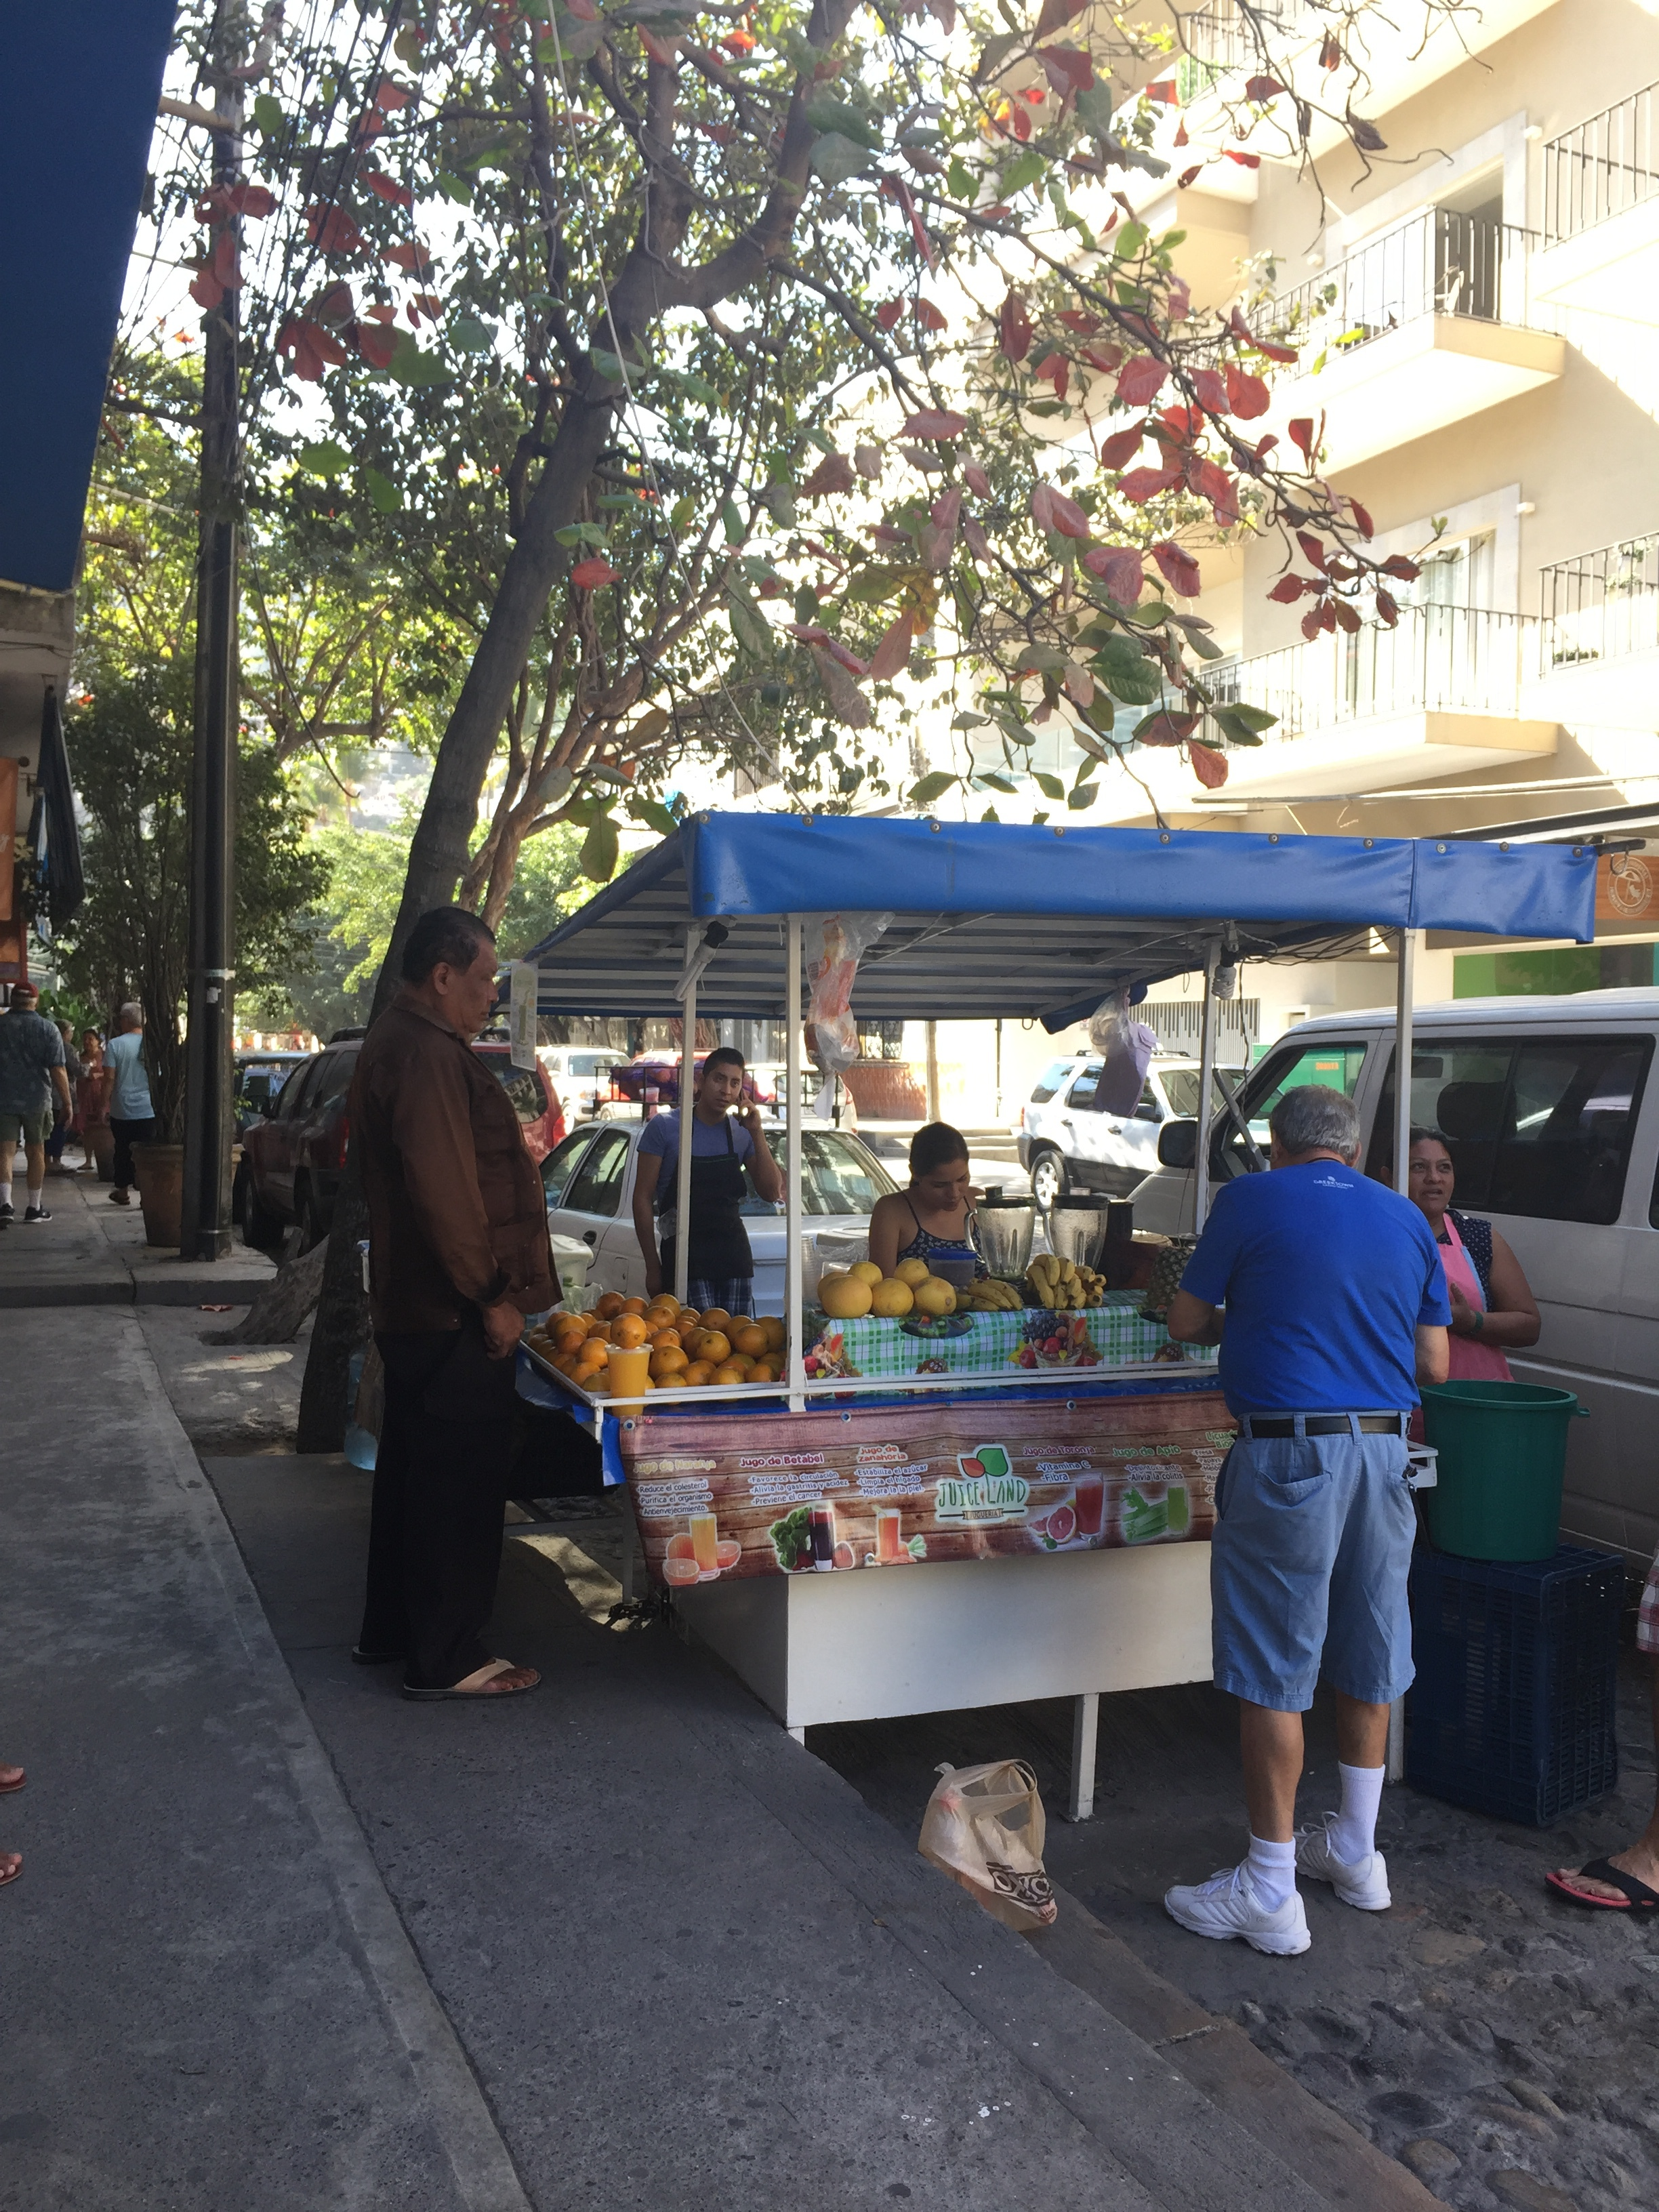 I can't get enough of the street vendors.